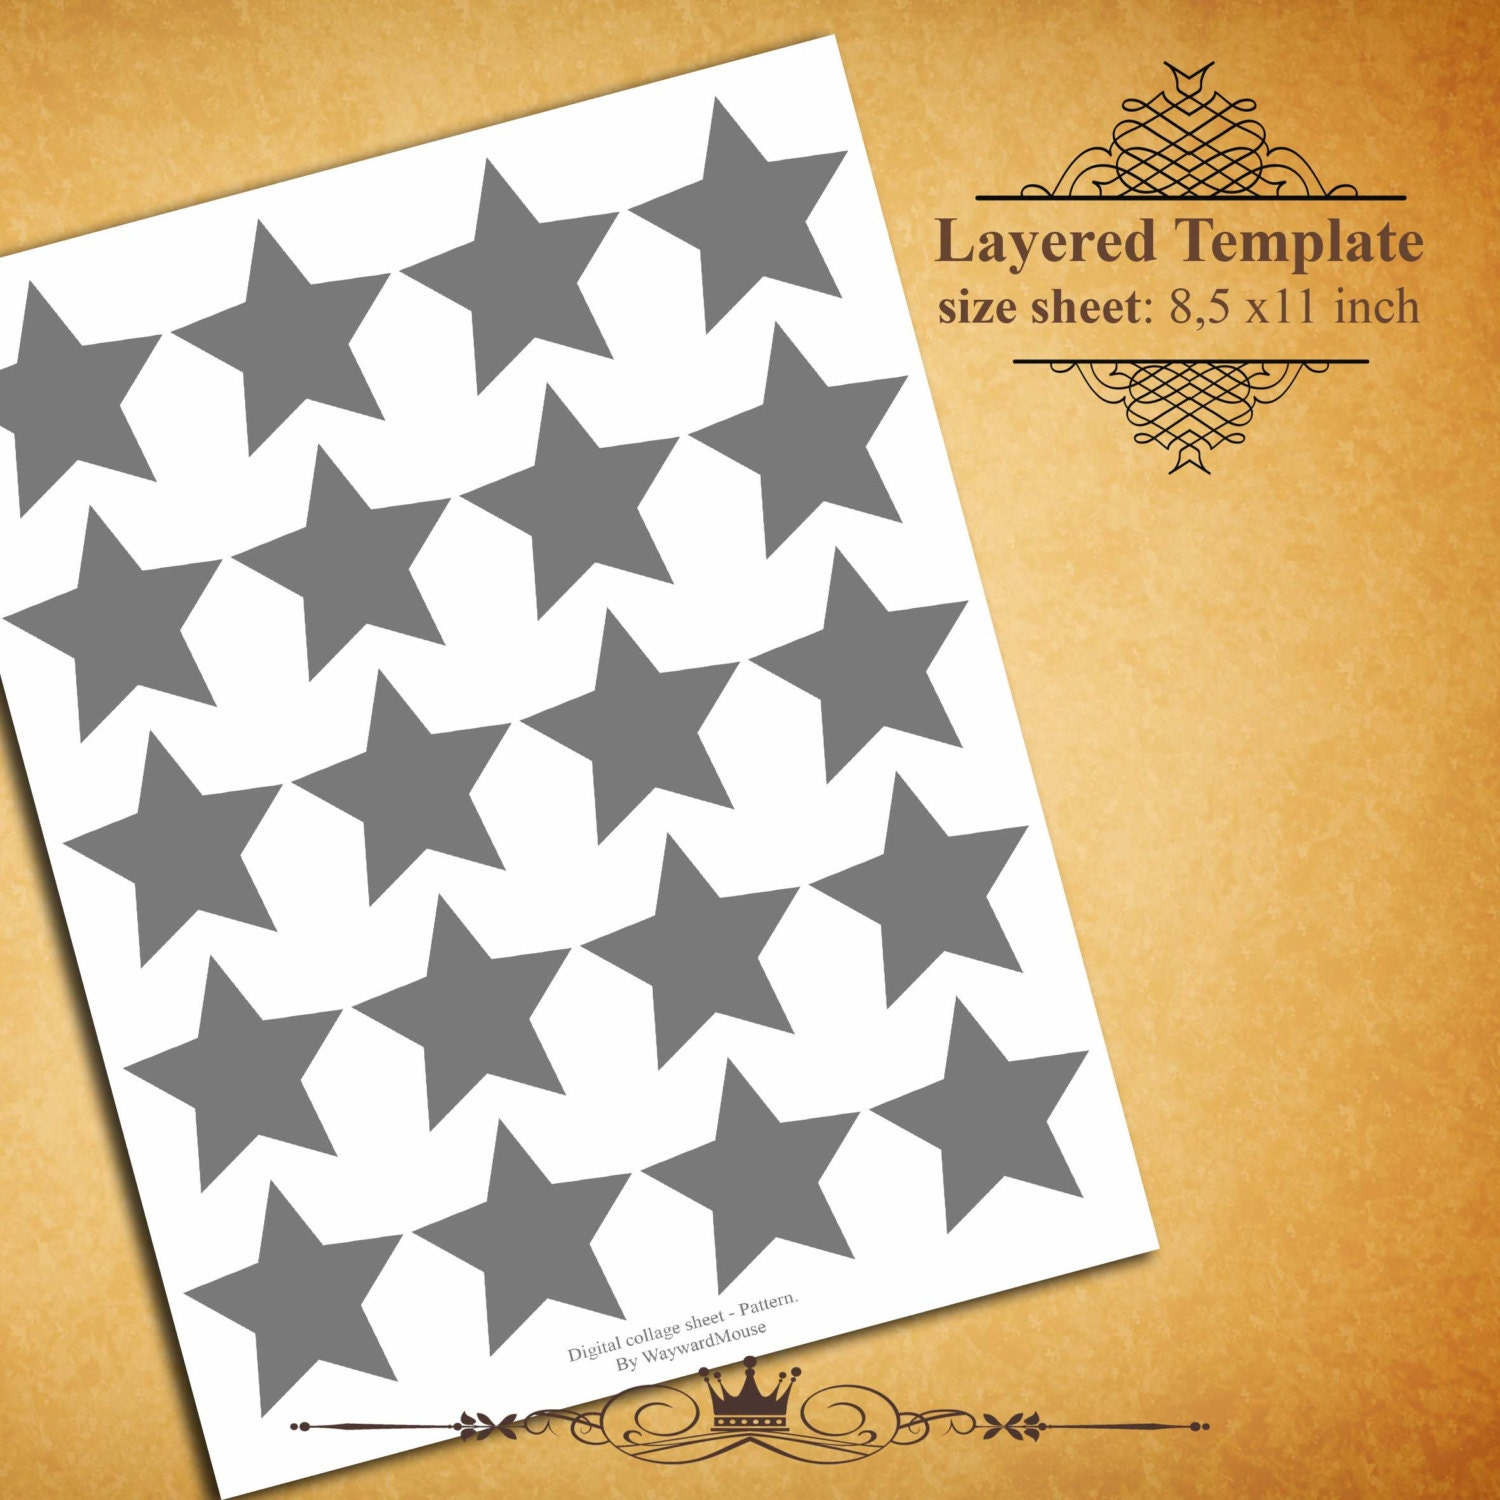 Cute 1 Year Experienced Java Resume Thick 10 Commandment Coloring Pages Solid 1300 Resume Selection Criteria 18th Birthday Invitations Templates Old 1930s Newspaper Template Dark1st Birthday Invitation Template Star 2 Inch Layered Template Digital Collage Sheet Printable DIY ..